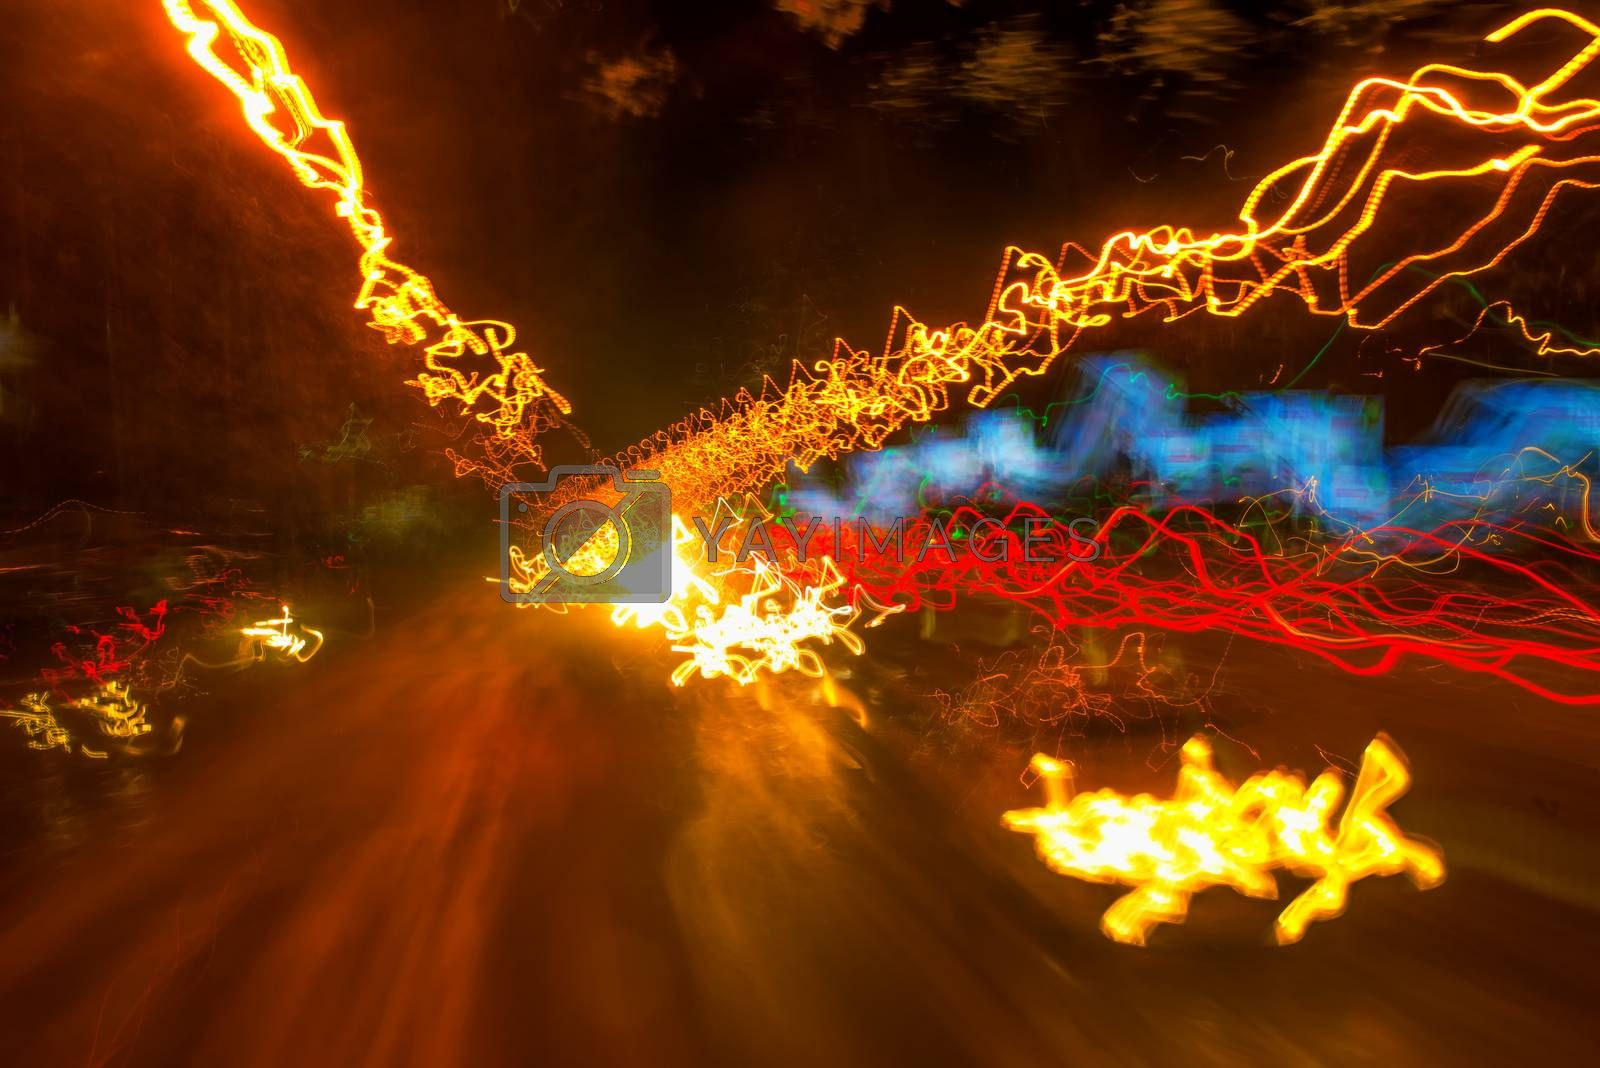 Traffic light paint with long exposure, colorful abstract motion blur background